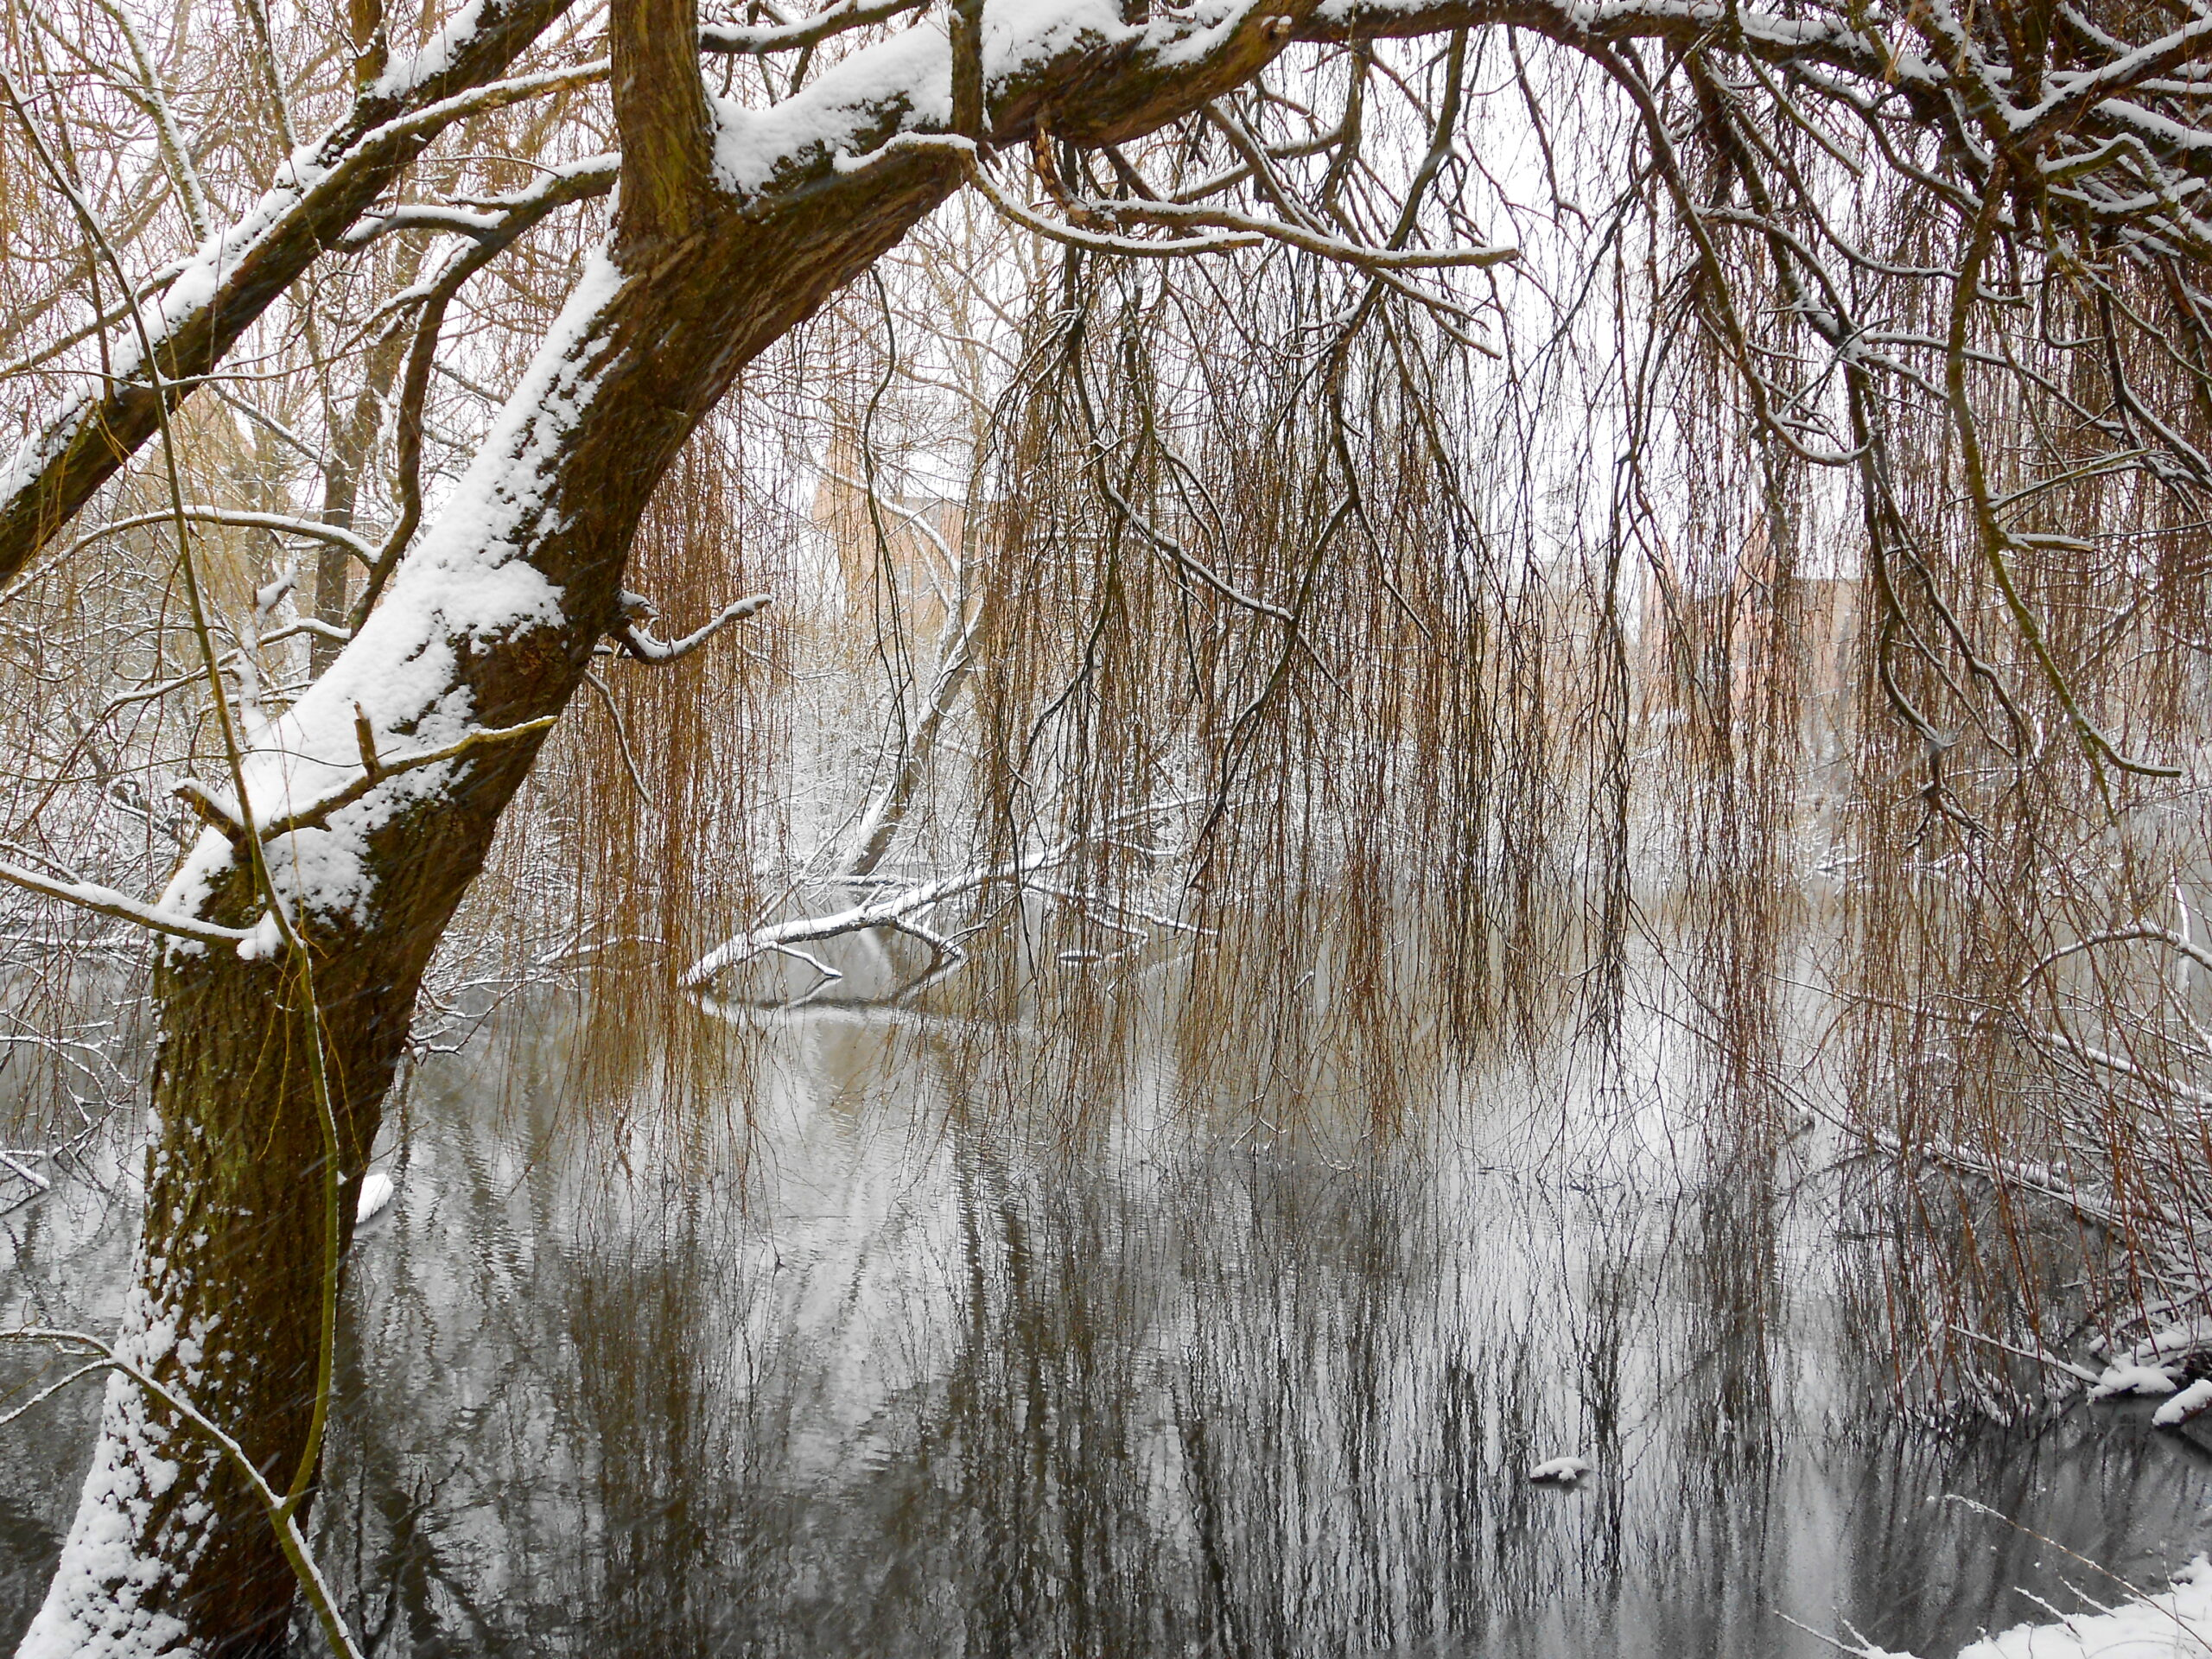 Image of a weeping willow over a lake covered lightly with snow.